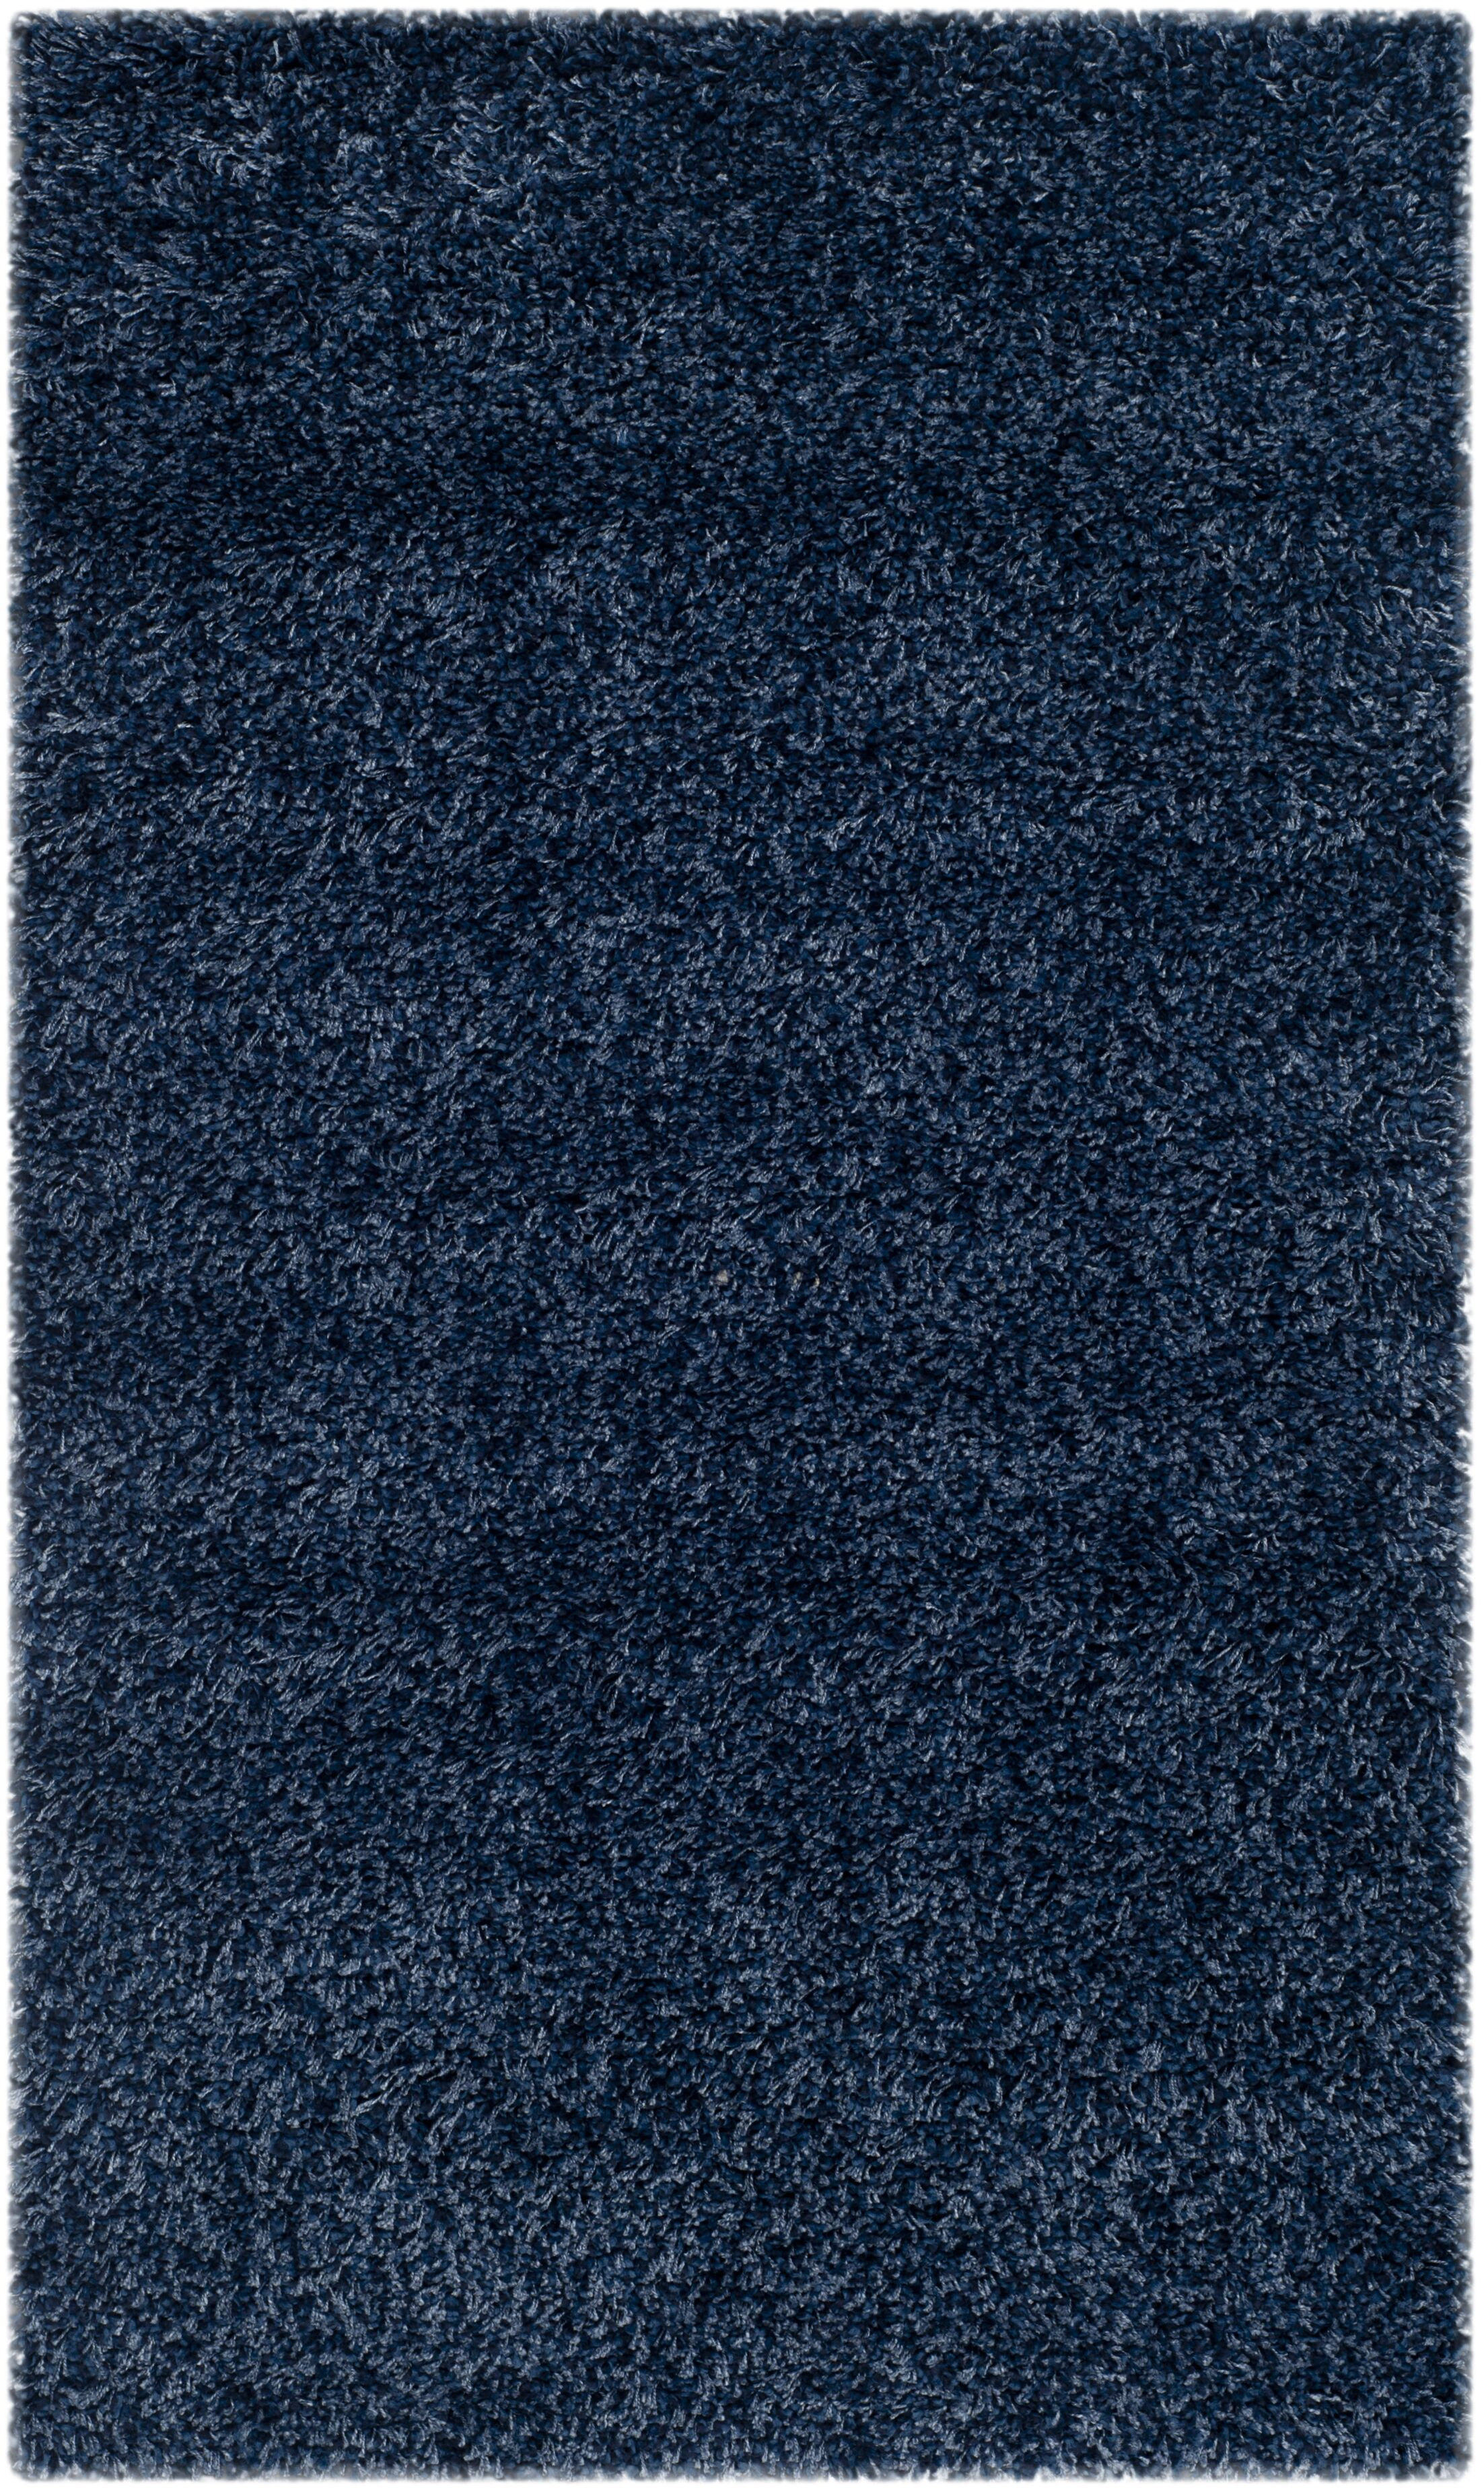 Starr Hill Navy Area Rug Rug Size: Rectangle 8'6